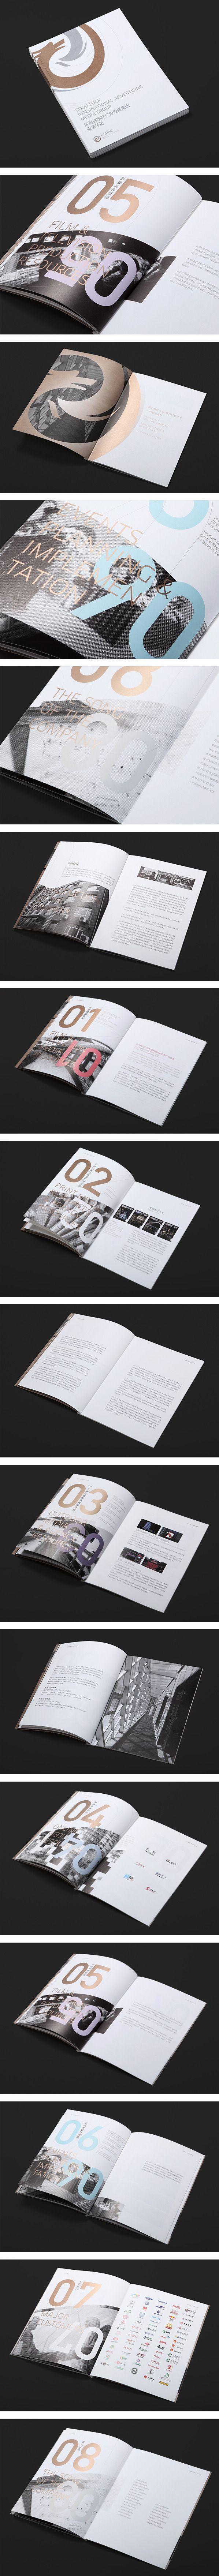 print (book, magazine, newspaper) + typography + editorial + layout + design |